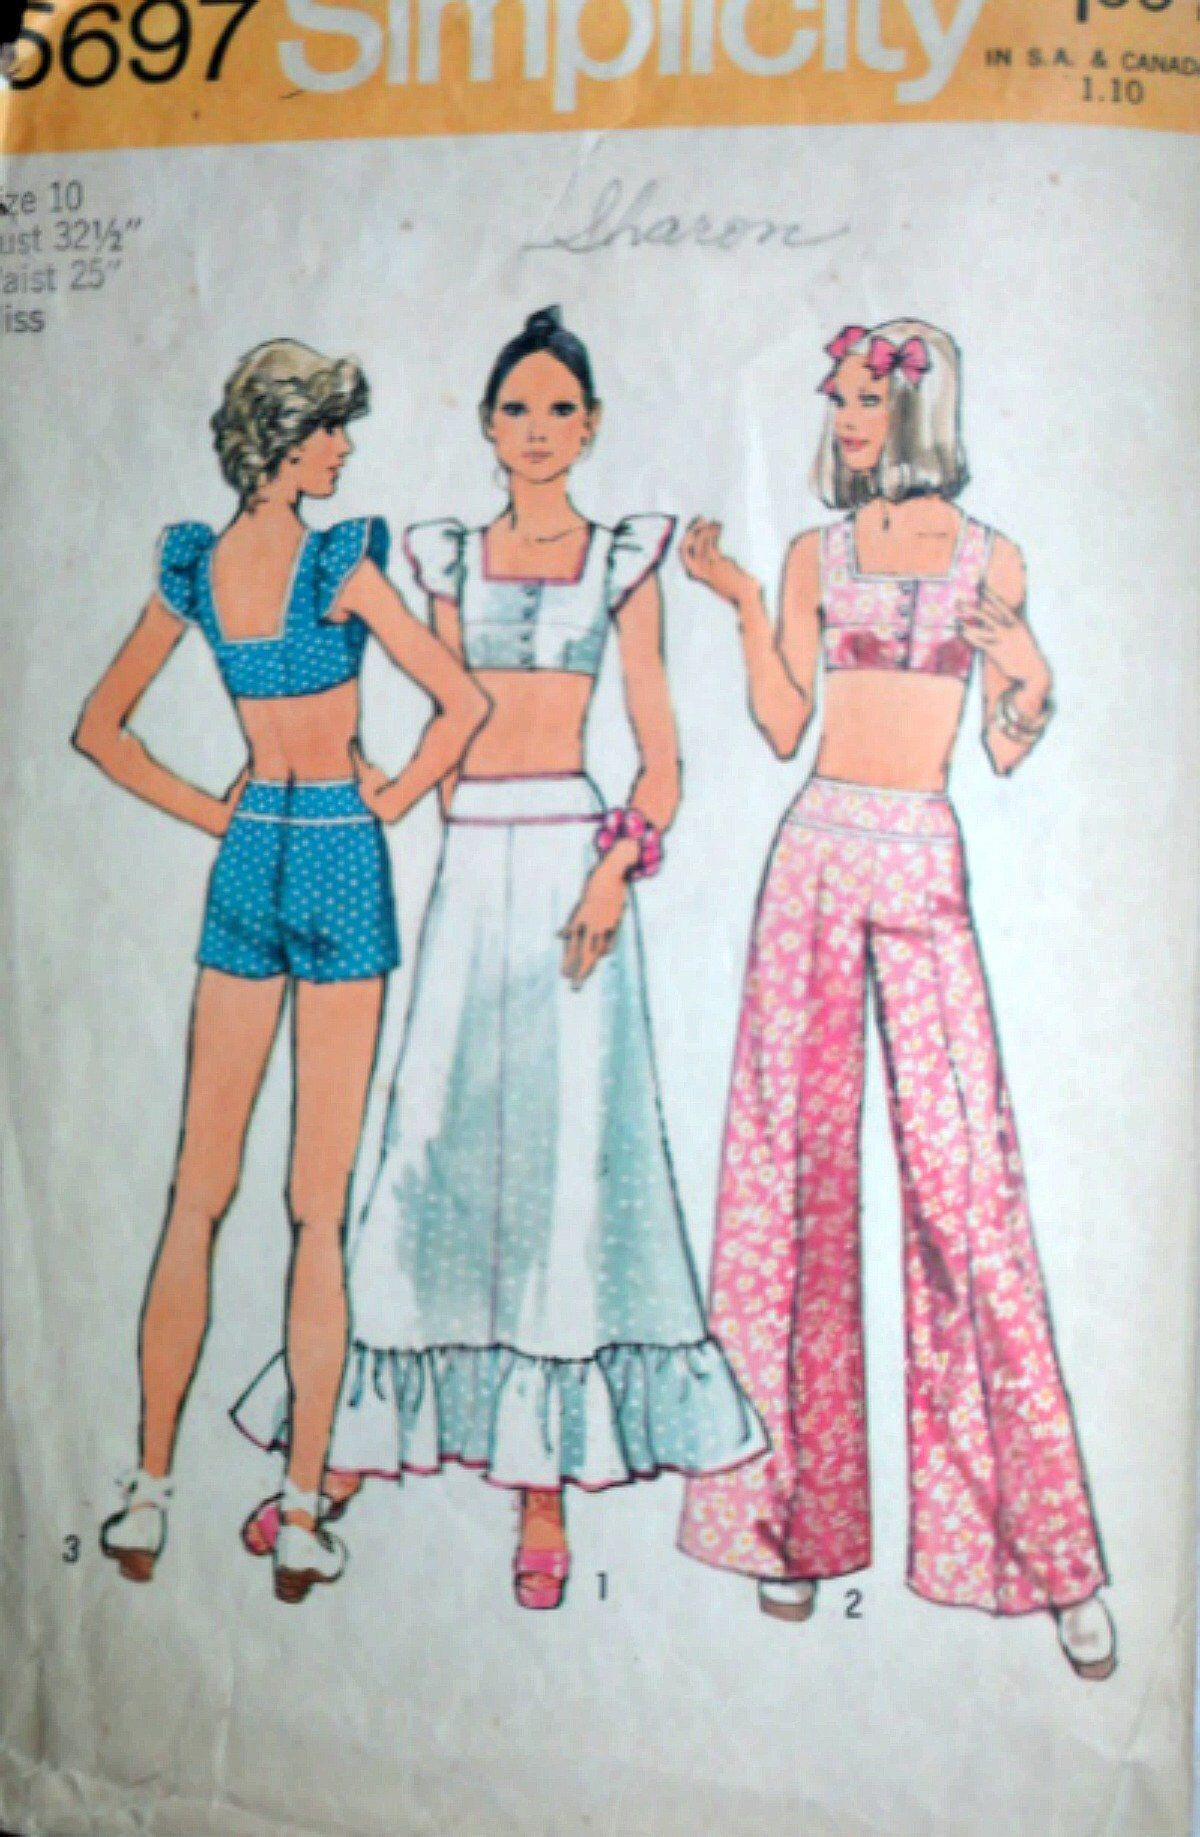 f989415f8e9a1 Vintage 70 s Simplicity 5697 Sewing Pattern